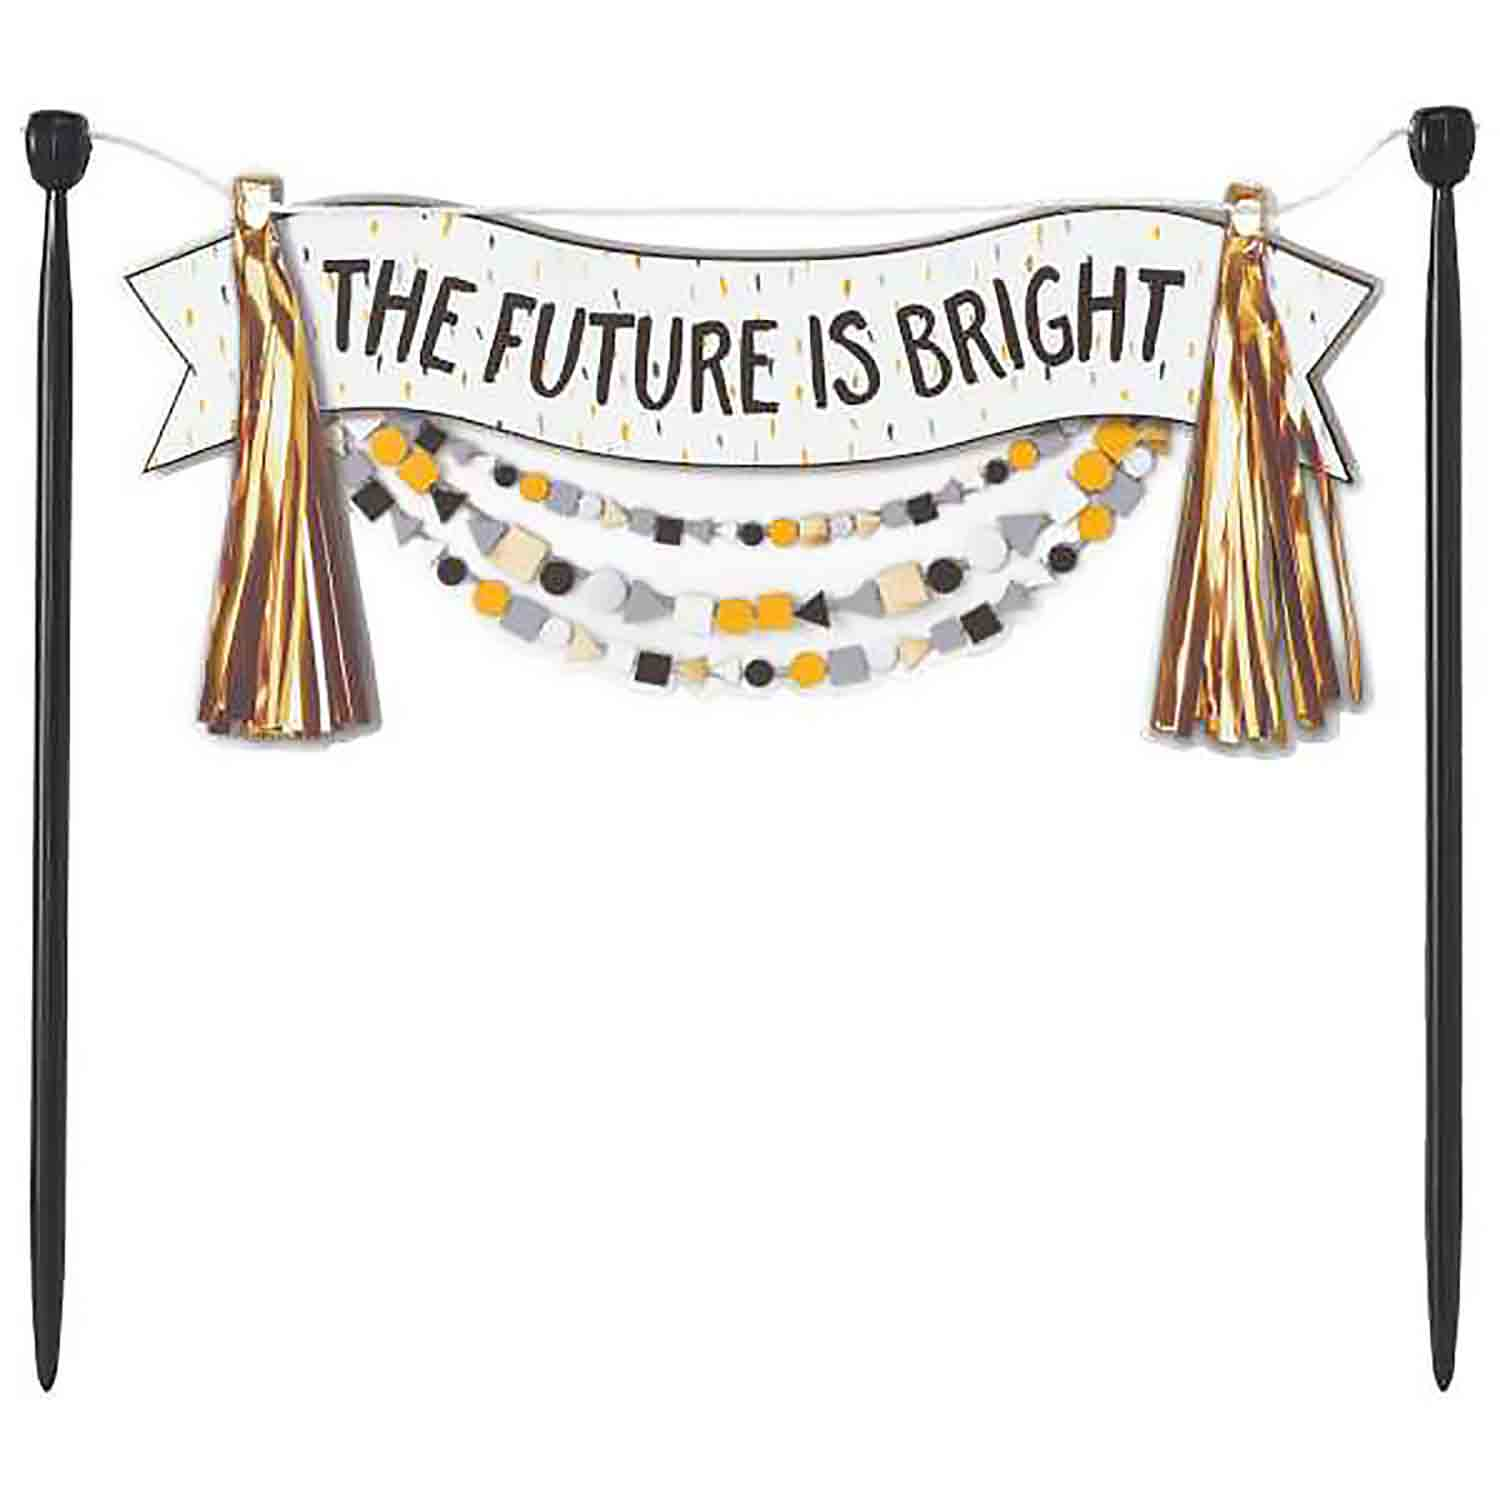 The Future is Bright Banner